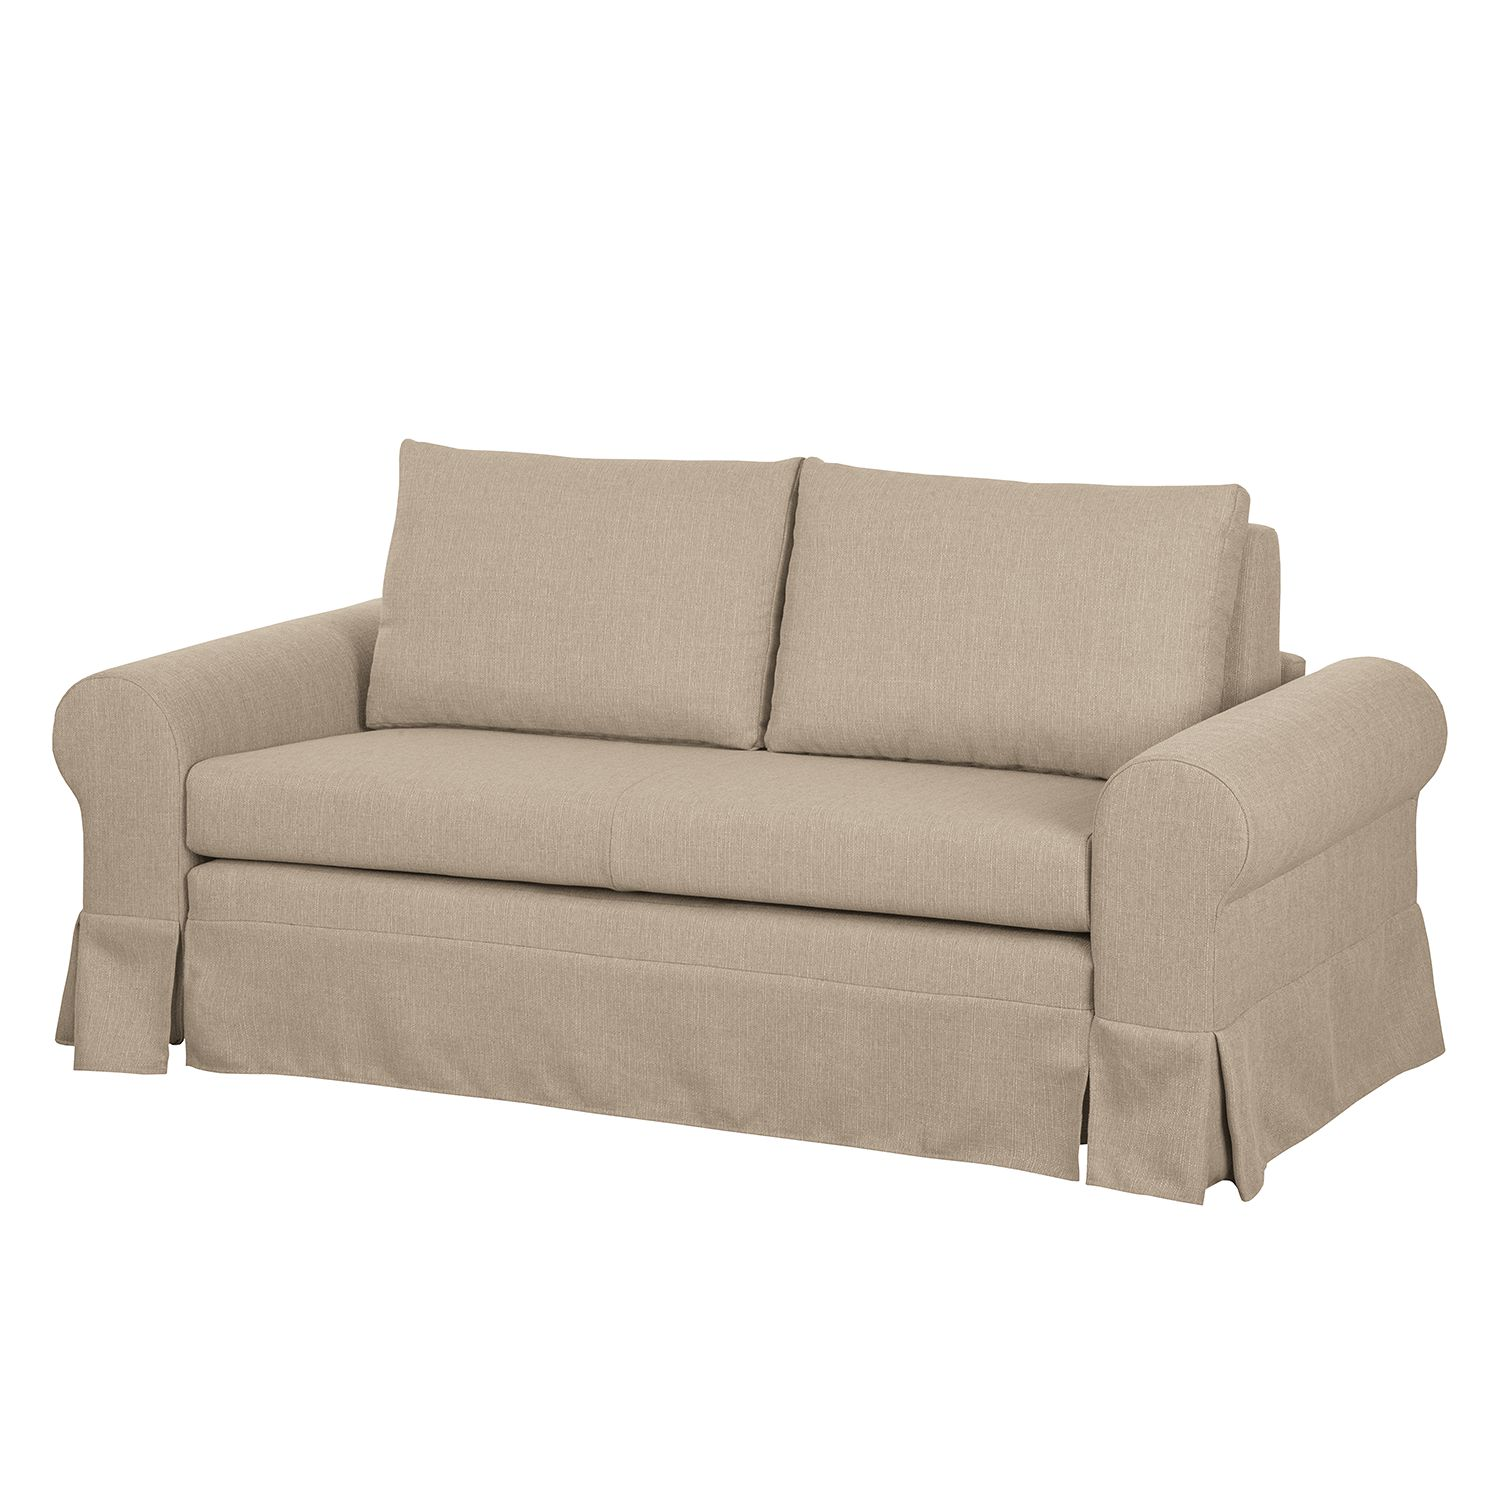 Schlafsofa Latina XIII - Webstoff - Cappuccino - 165 cm, mooved